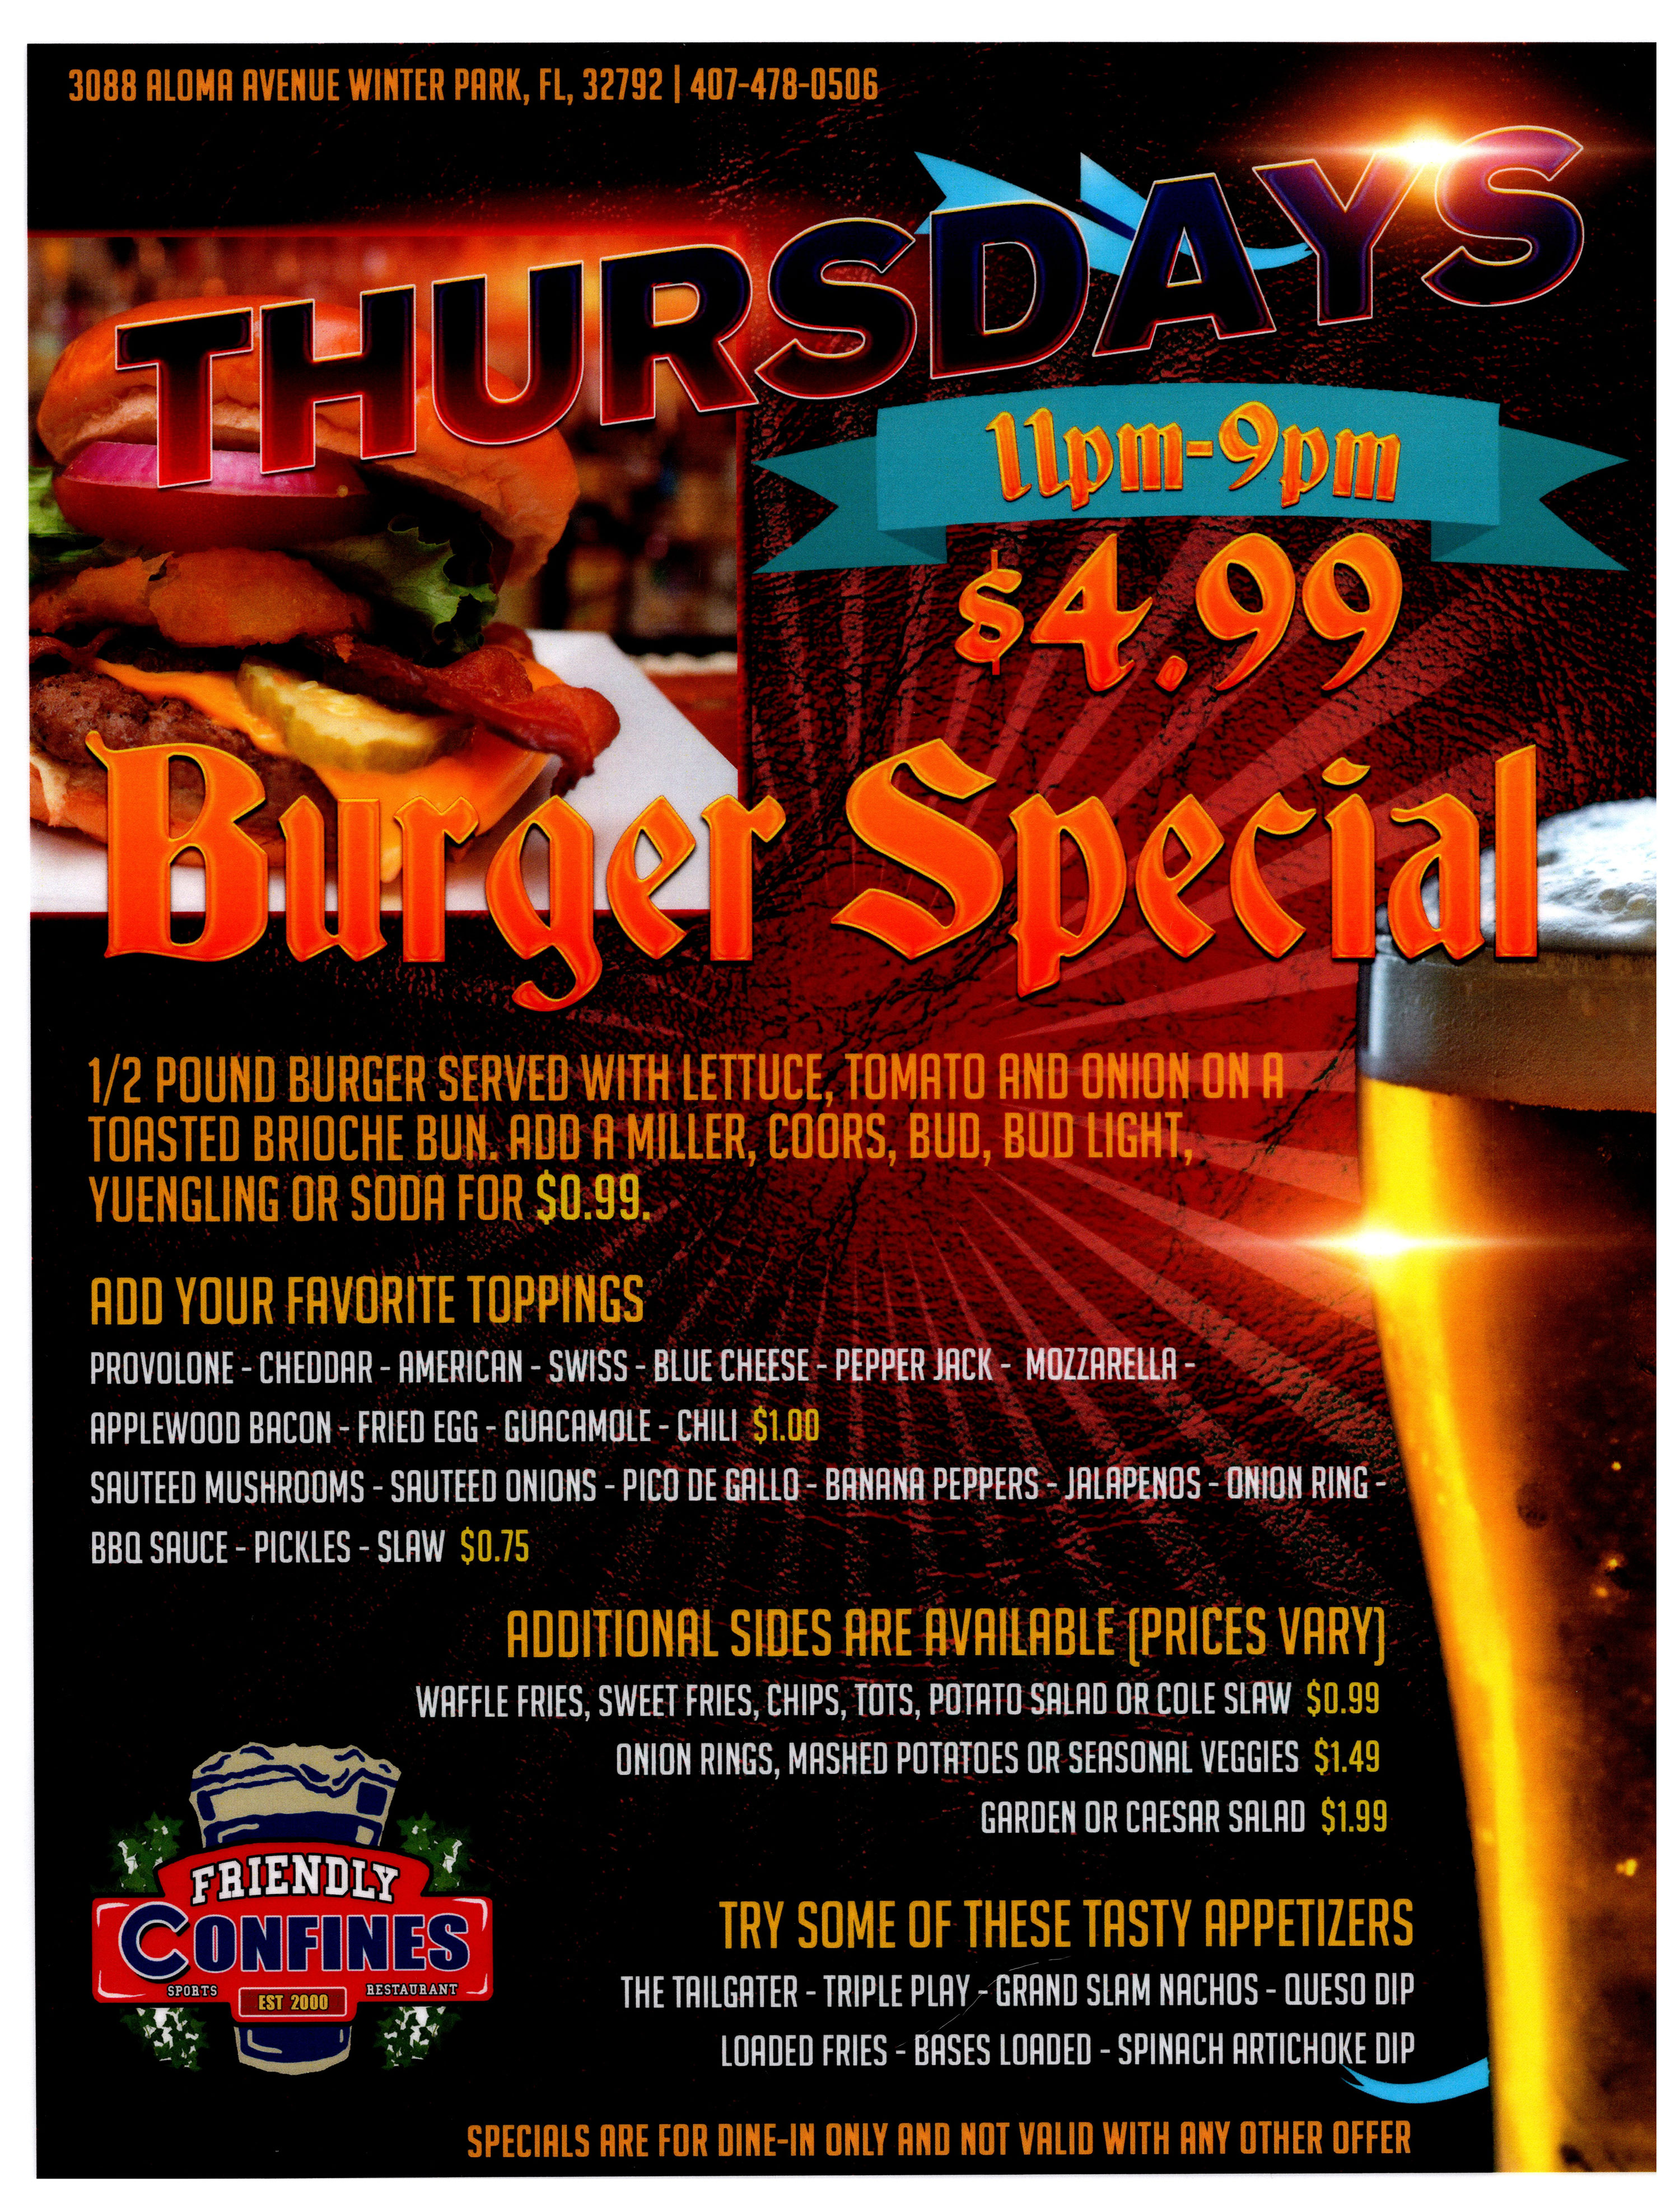 Burger Special Thursdays at Winter Park Friendly Confines Sports Restaurant and Bar